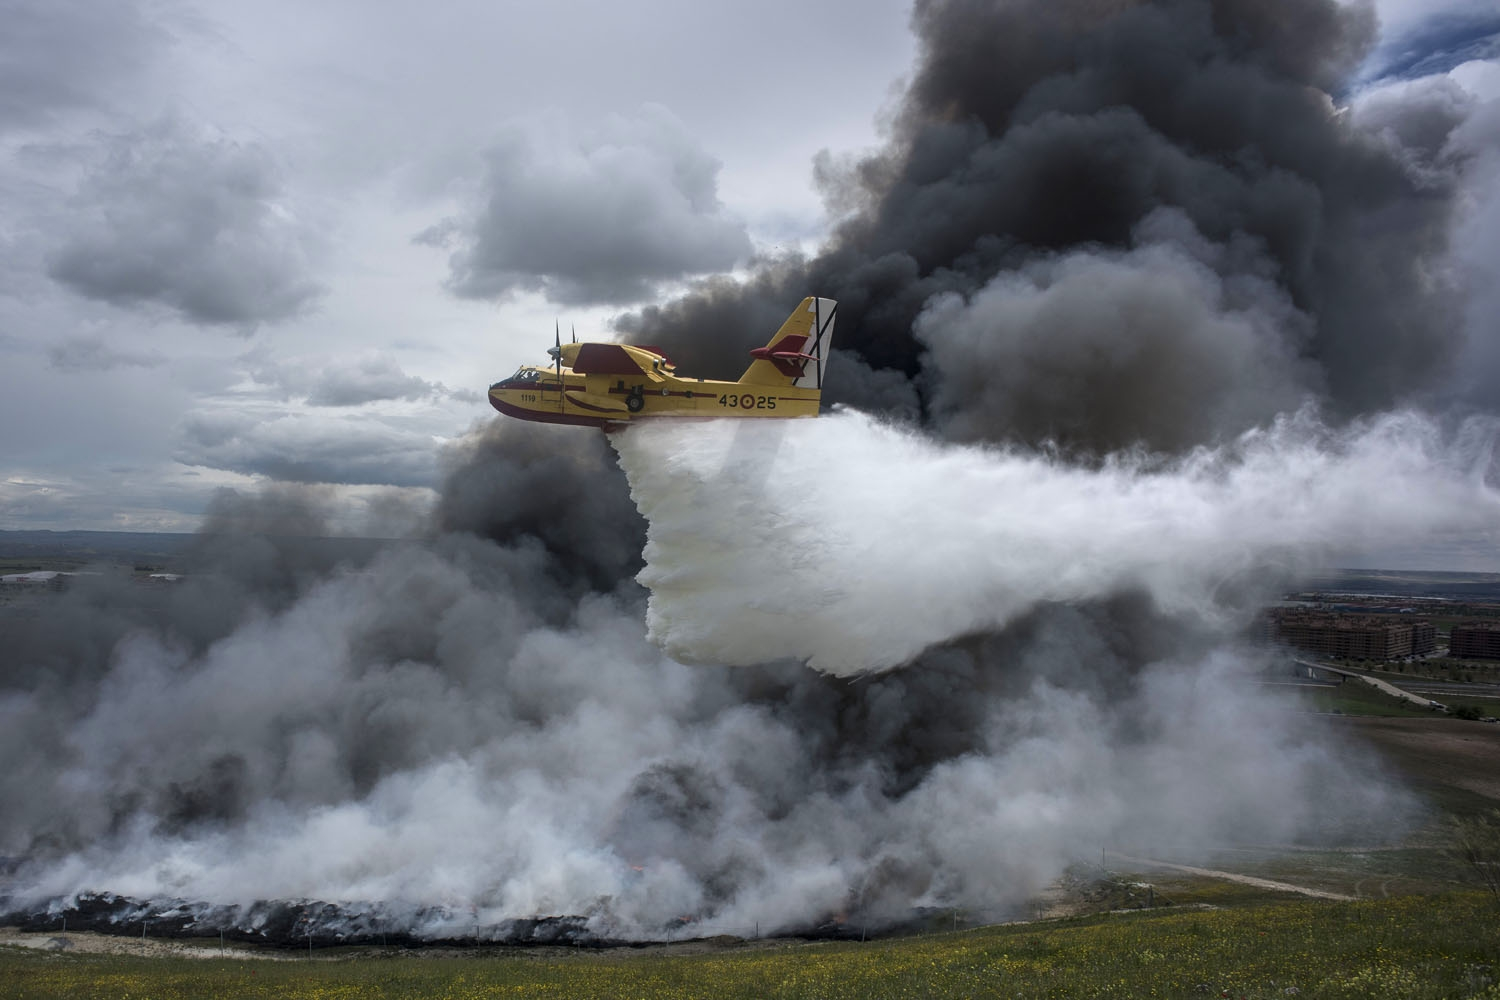 A seaplane discharges water over the tyres burning in an uncontrolled dump near the town of Sesena, after a fire brokeout early on May 13, 2016